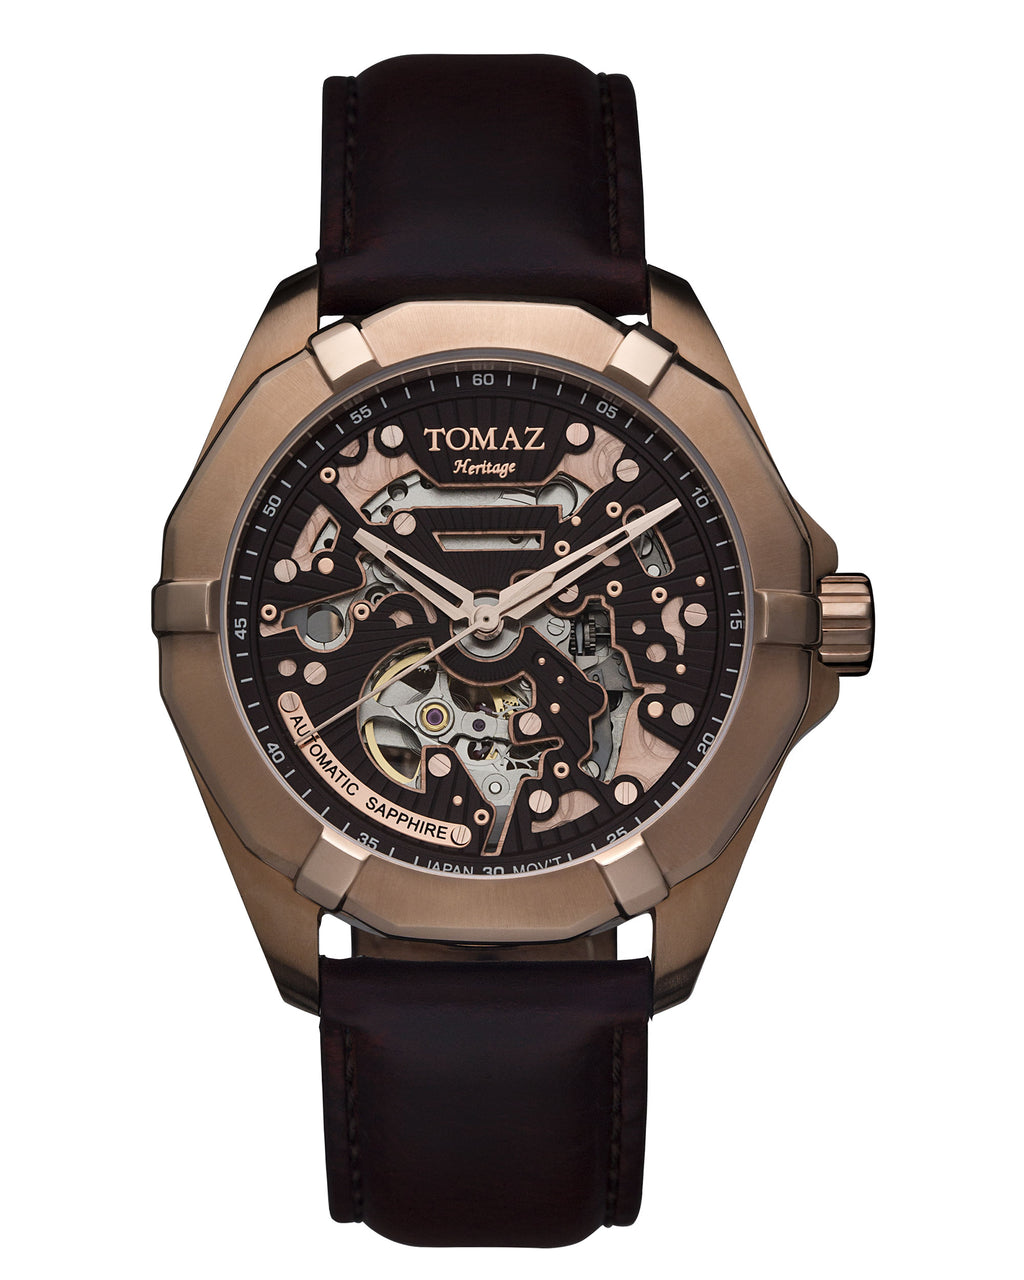 Tomaz Men's Watch TW009A - (Rose Gold/Coffee)